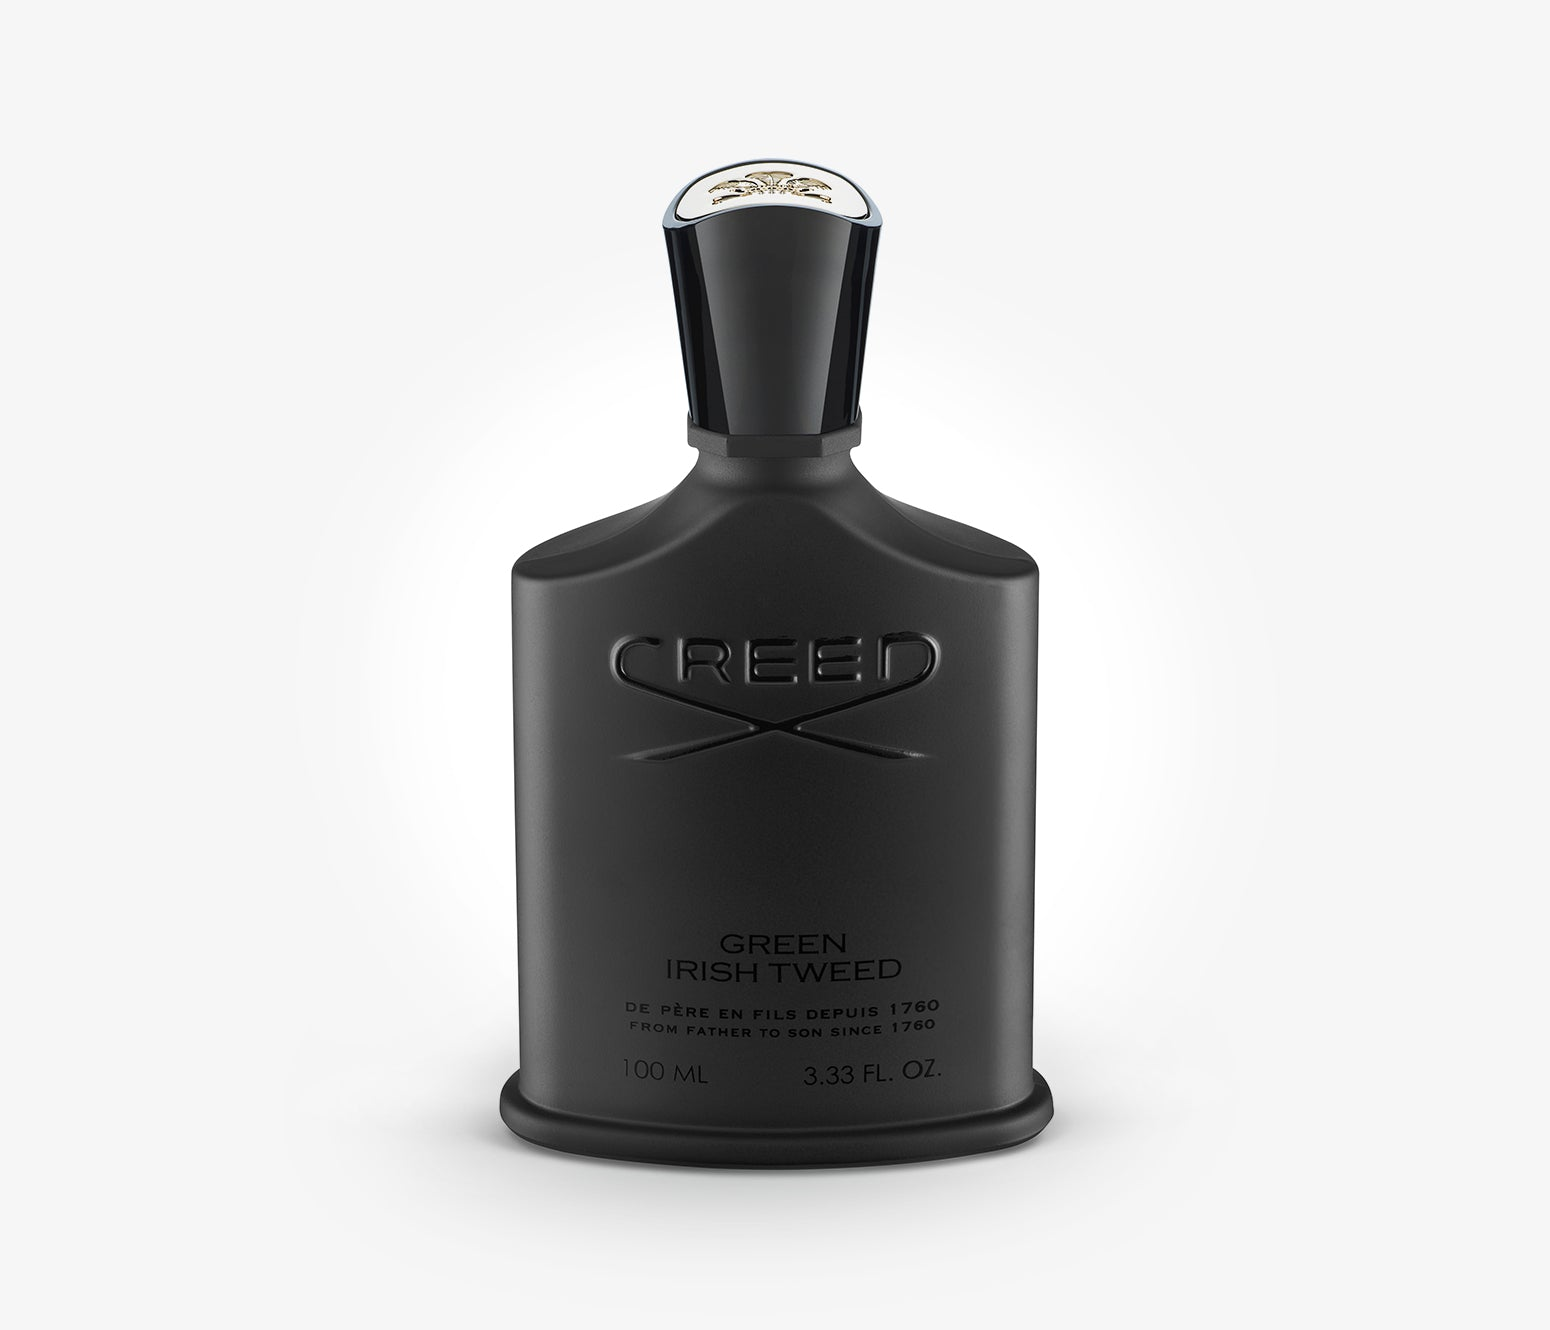 Creed  - Green Irish Tweed  - 100ml - WSD001 - Product Image - Fragrance - Les Senteurs